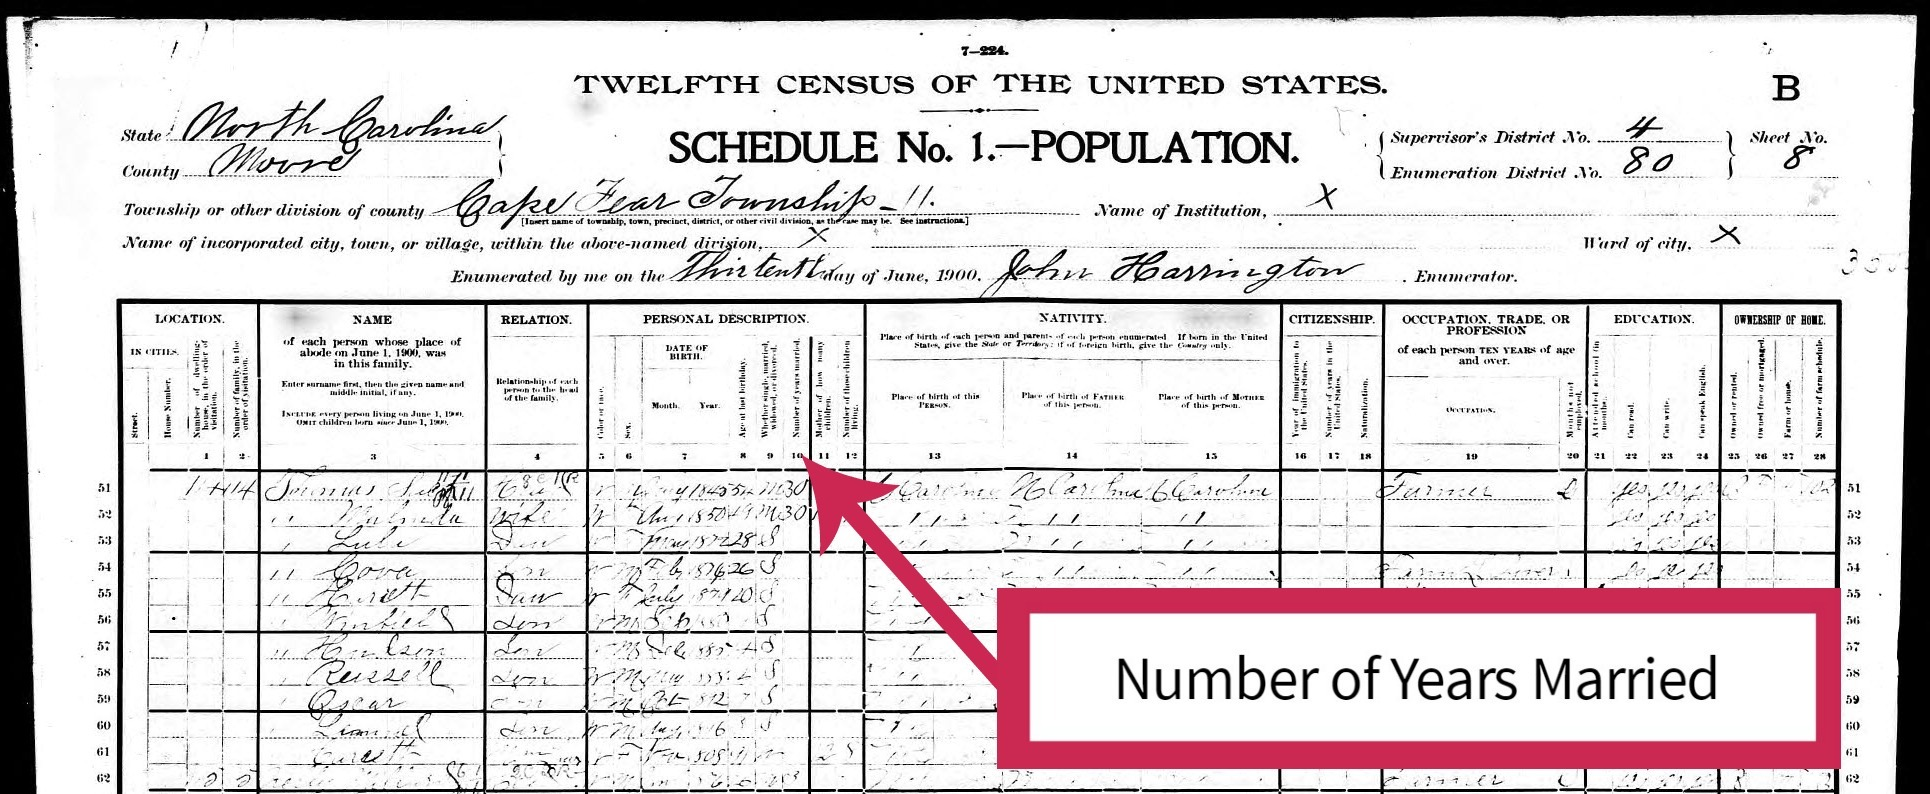 Wondering what types of genealogy records hold clues to your ancestor's marriage? Use these 7 resources and tips to move your genealogy research forward. #genealogy #ancestors #familyhistory